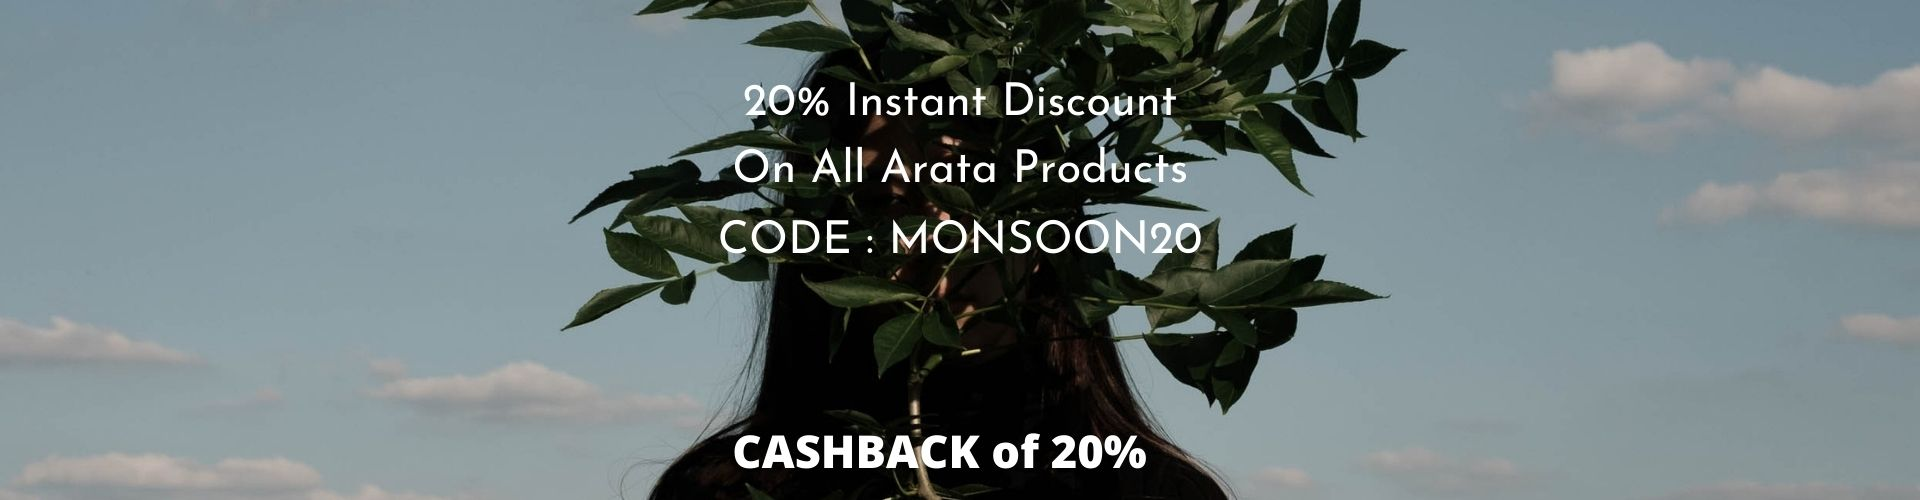 Instant 20 % off on all arata products with 20 % cashback from flopoffer